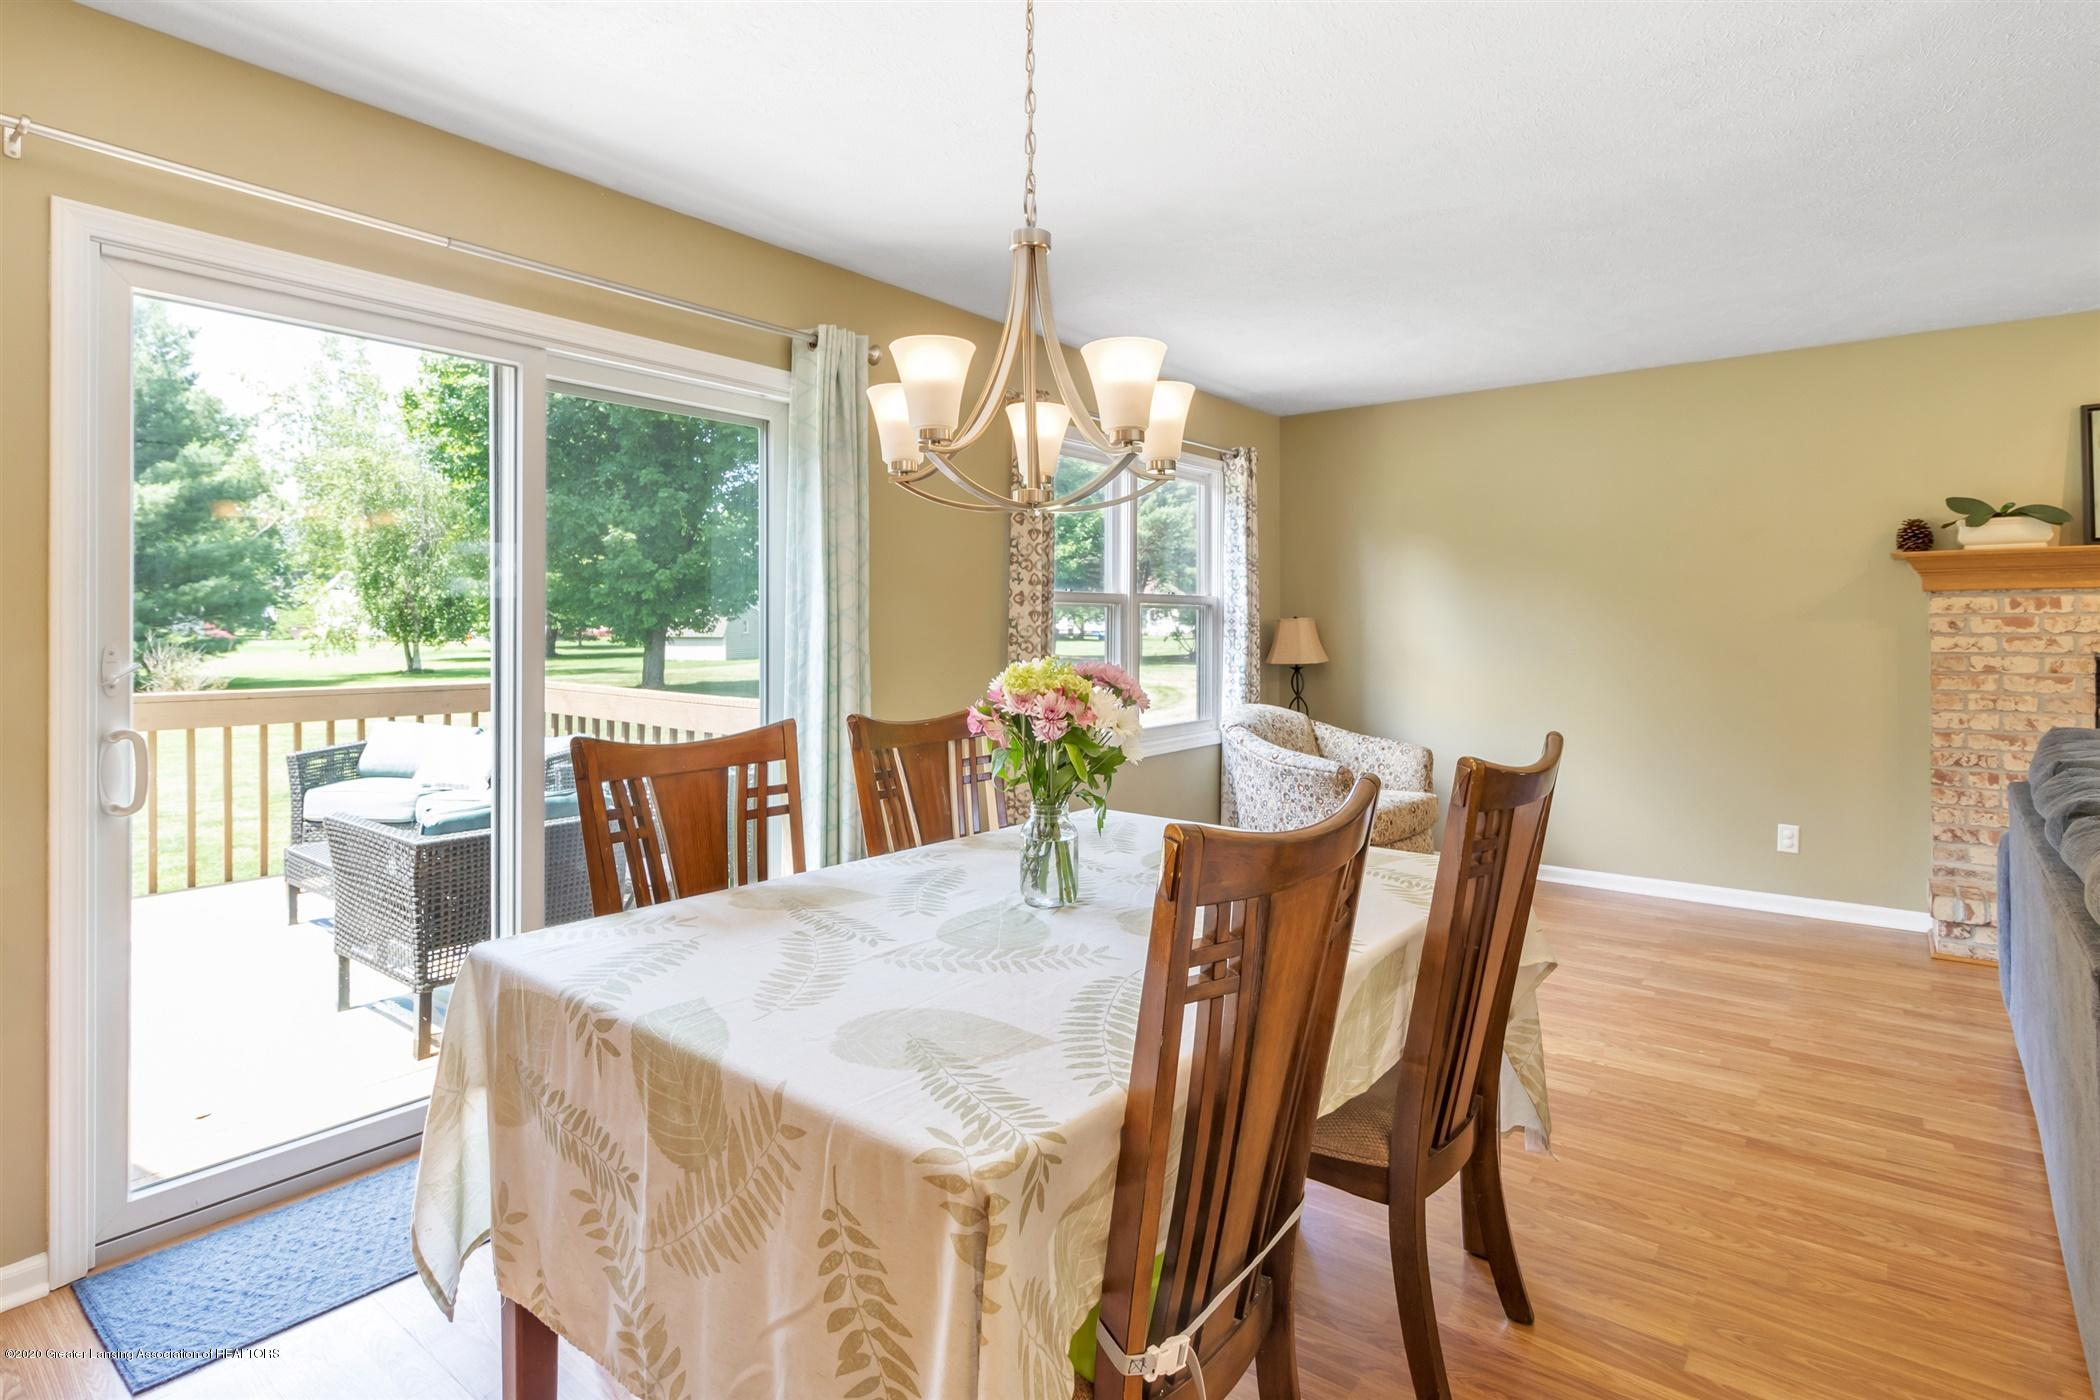 2945 Whistlewood Way - 14-2945Whistlewood-WindowStill-Real - 14